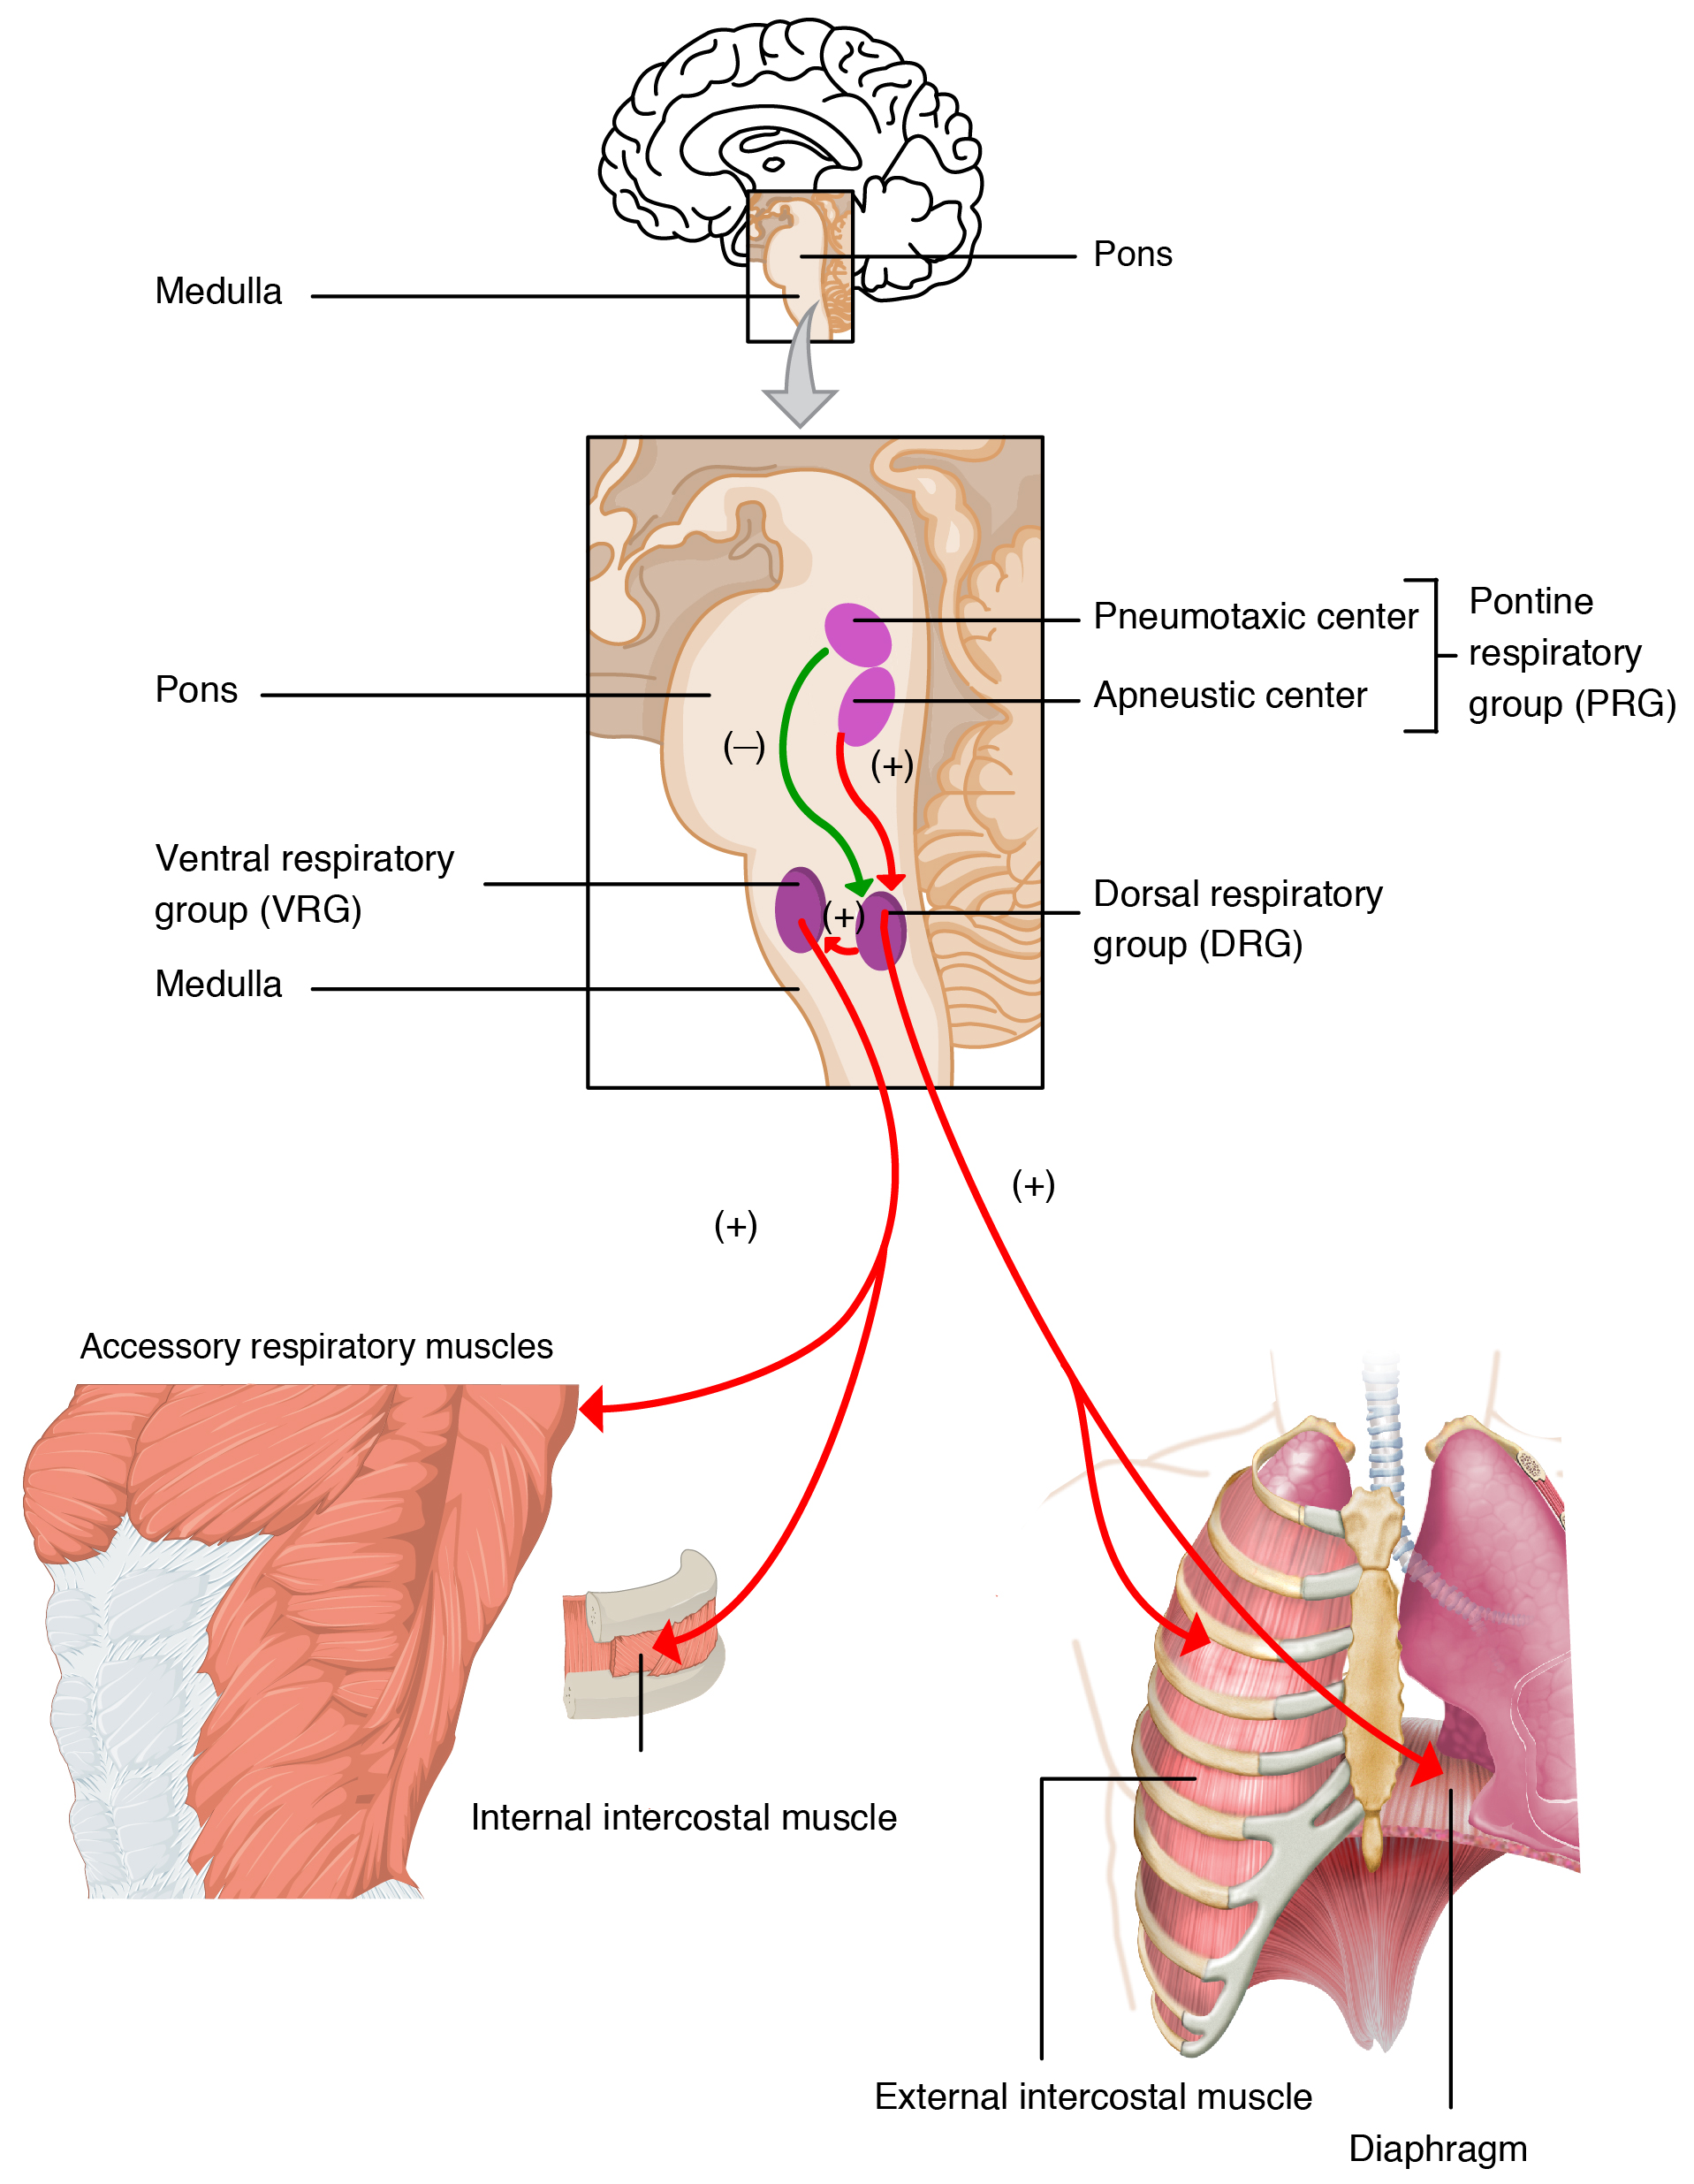 The top panel of this image shows the regions of the brain that control respiration. The middle panel shows a magnified view of these regions and links the regions of the brain to the specific organs that they control.